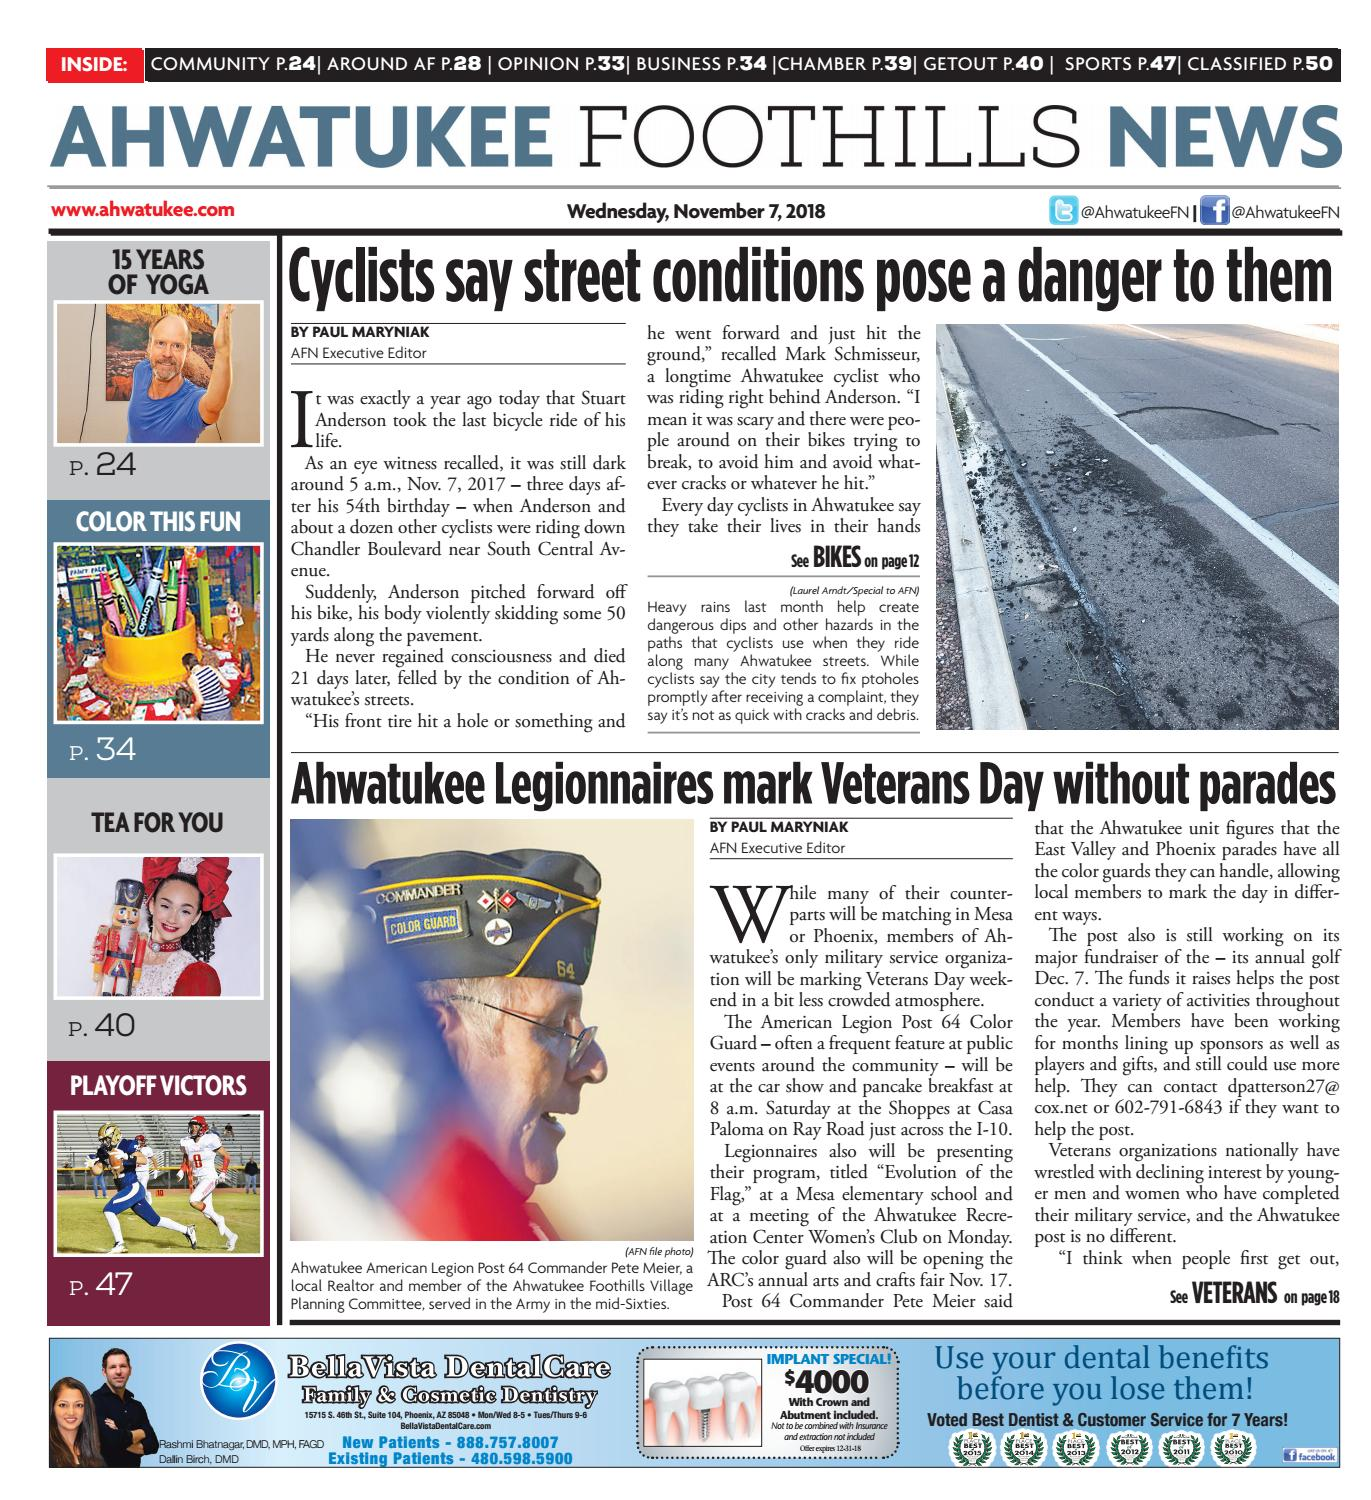 Ahwatukee Foothills News - November 7, 2018 by Times Media Group - issuu